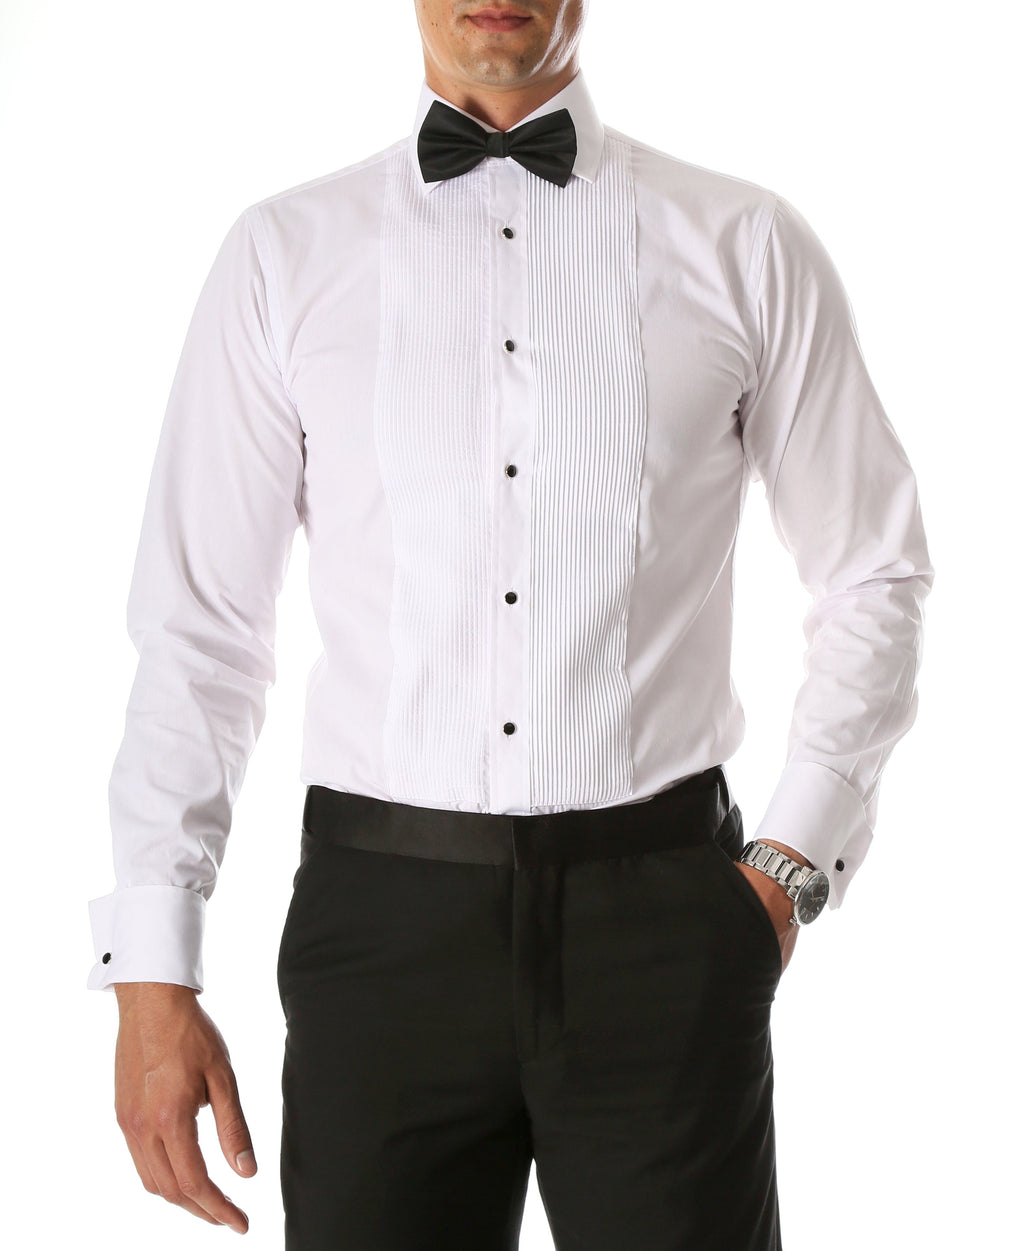 Ferrecci Men's Paris White Regular Fit Lay Down Collar Pleated Tuxedo Shirt - Giorgio's Menswear